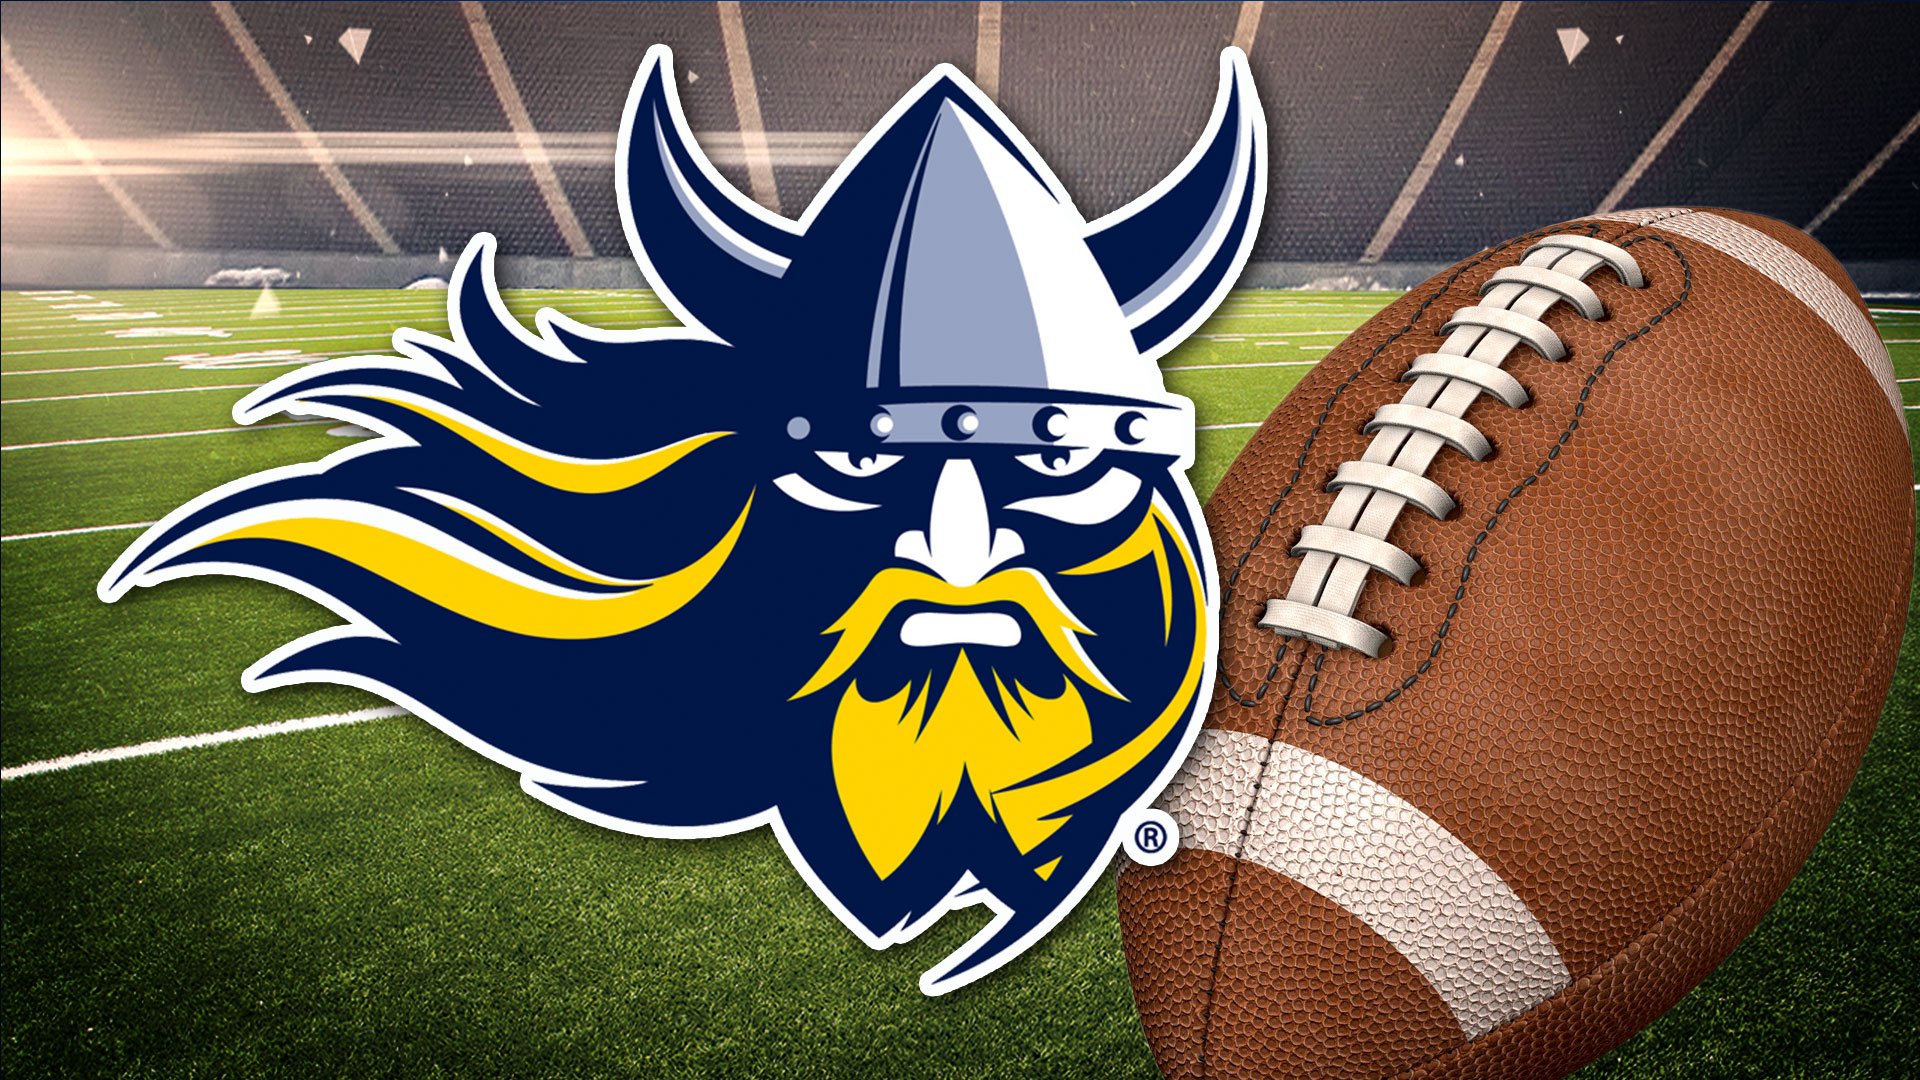 KELO-Augustana-Vikings-football_1529375676795.jpg